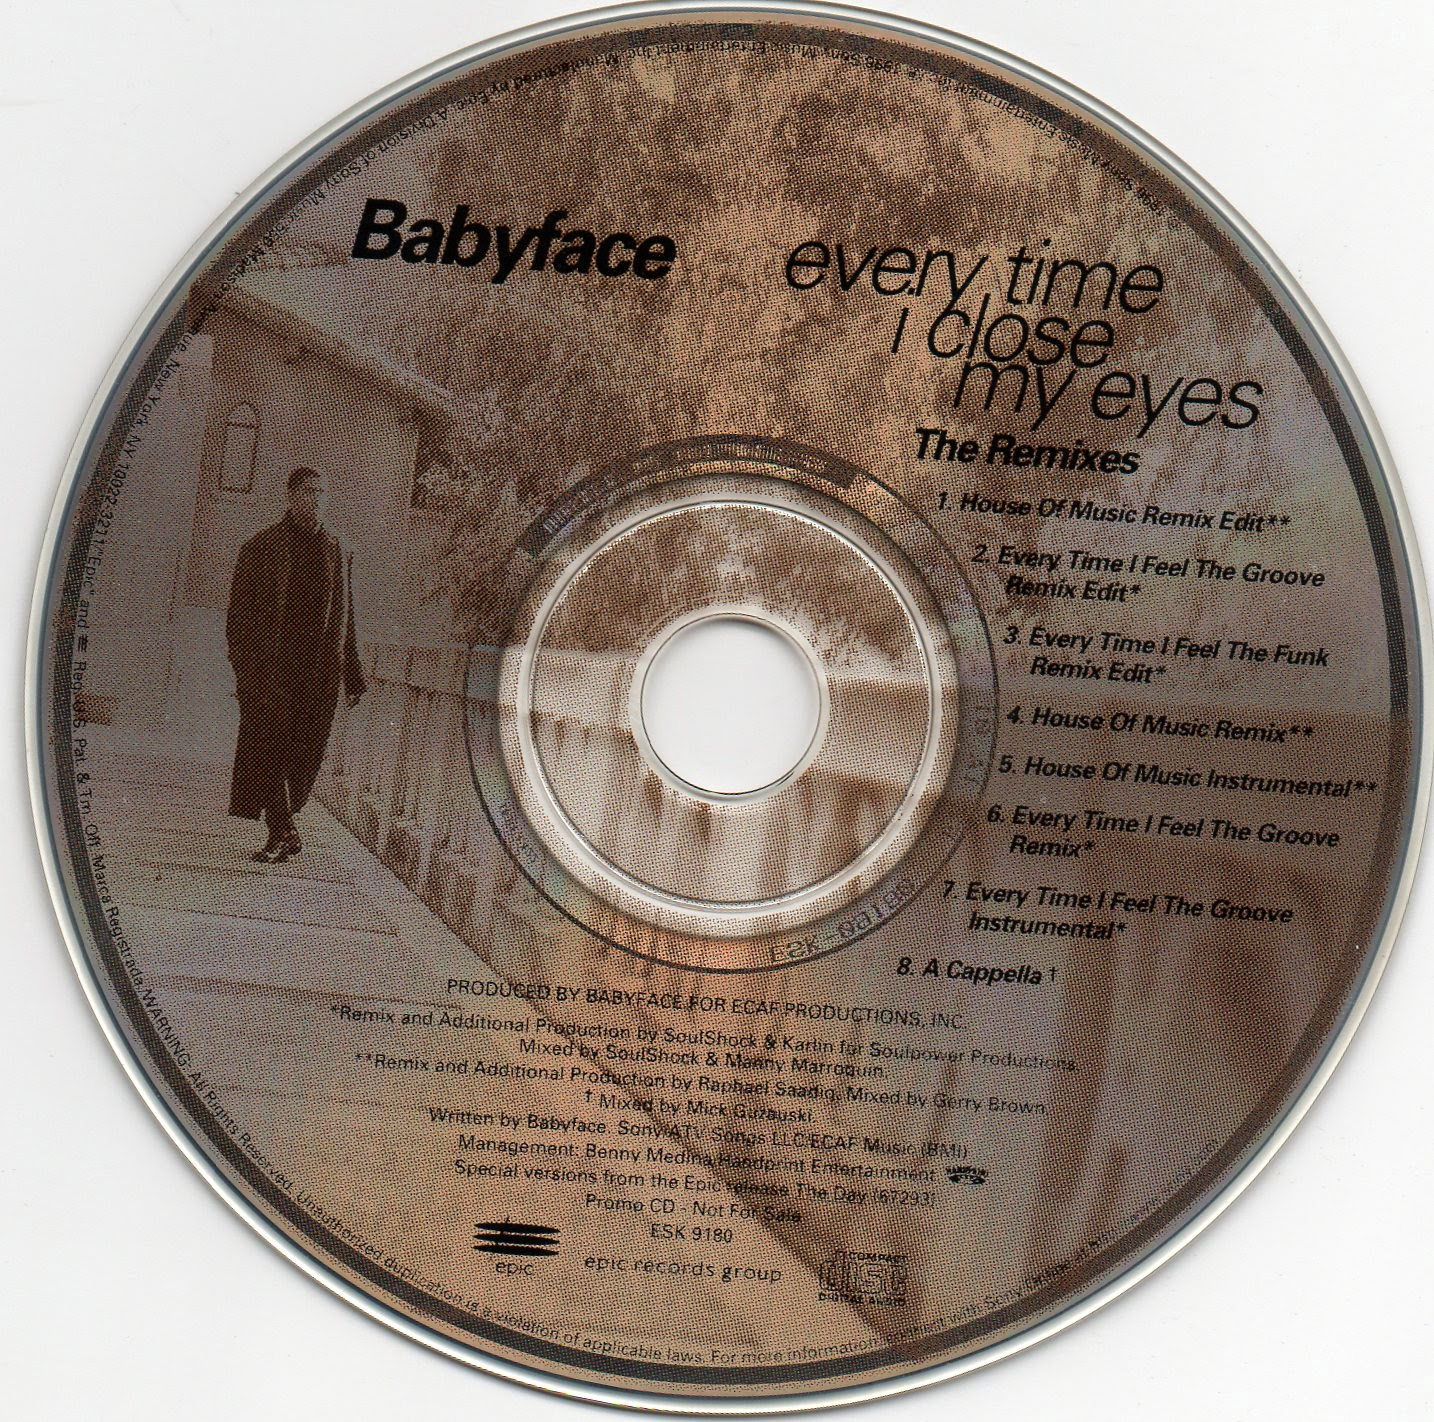 Babyface - Every Time I Close My Eyes (The Remixes) (Promo CDS) (1996)